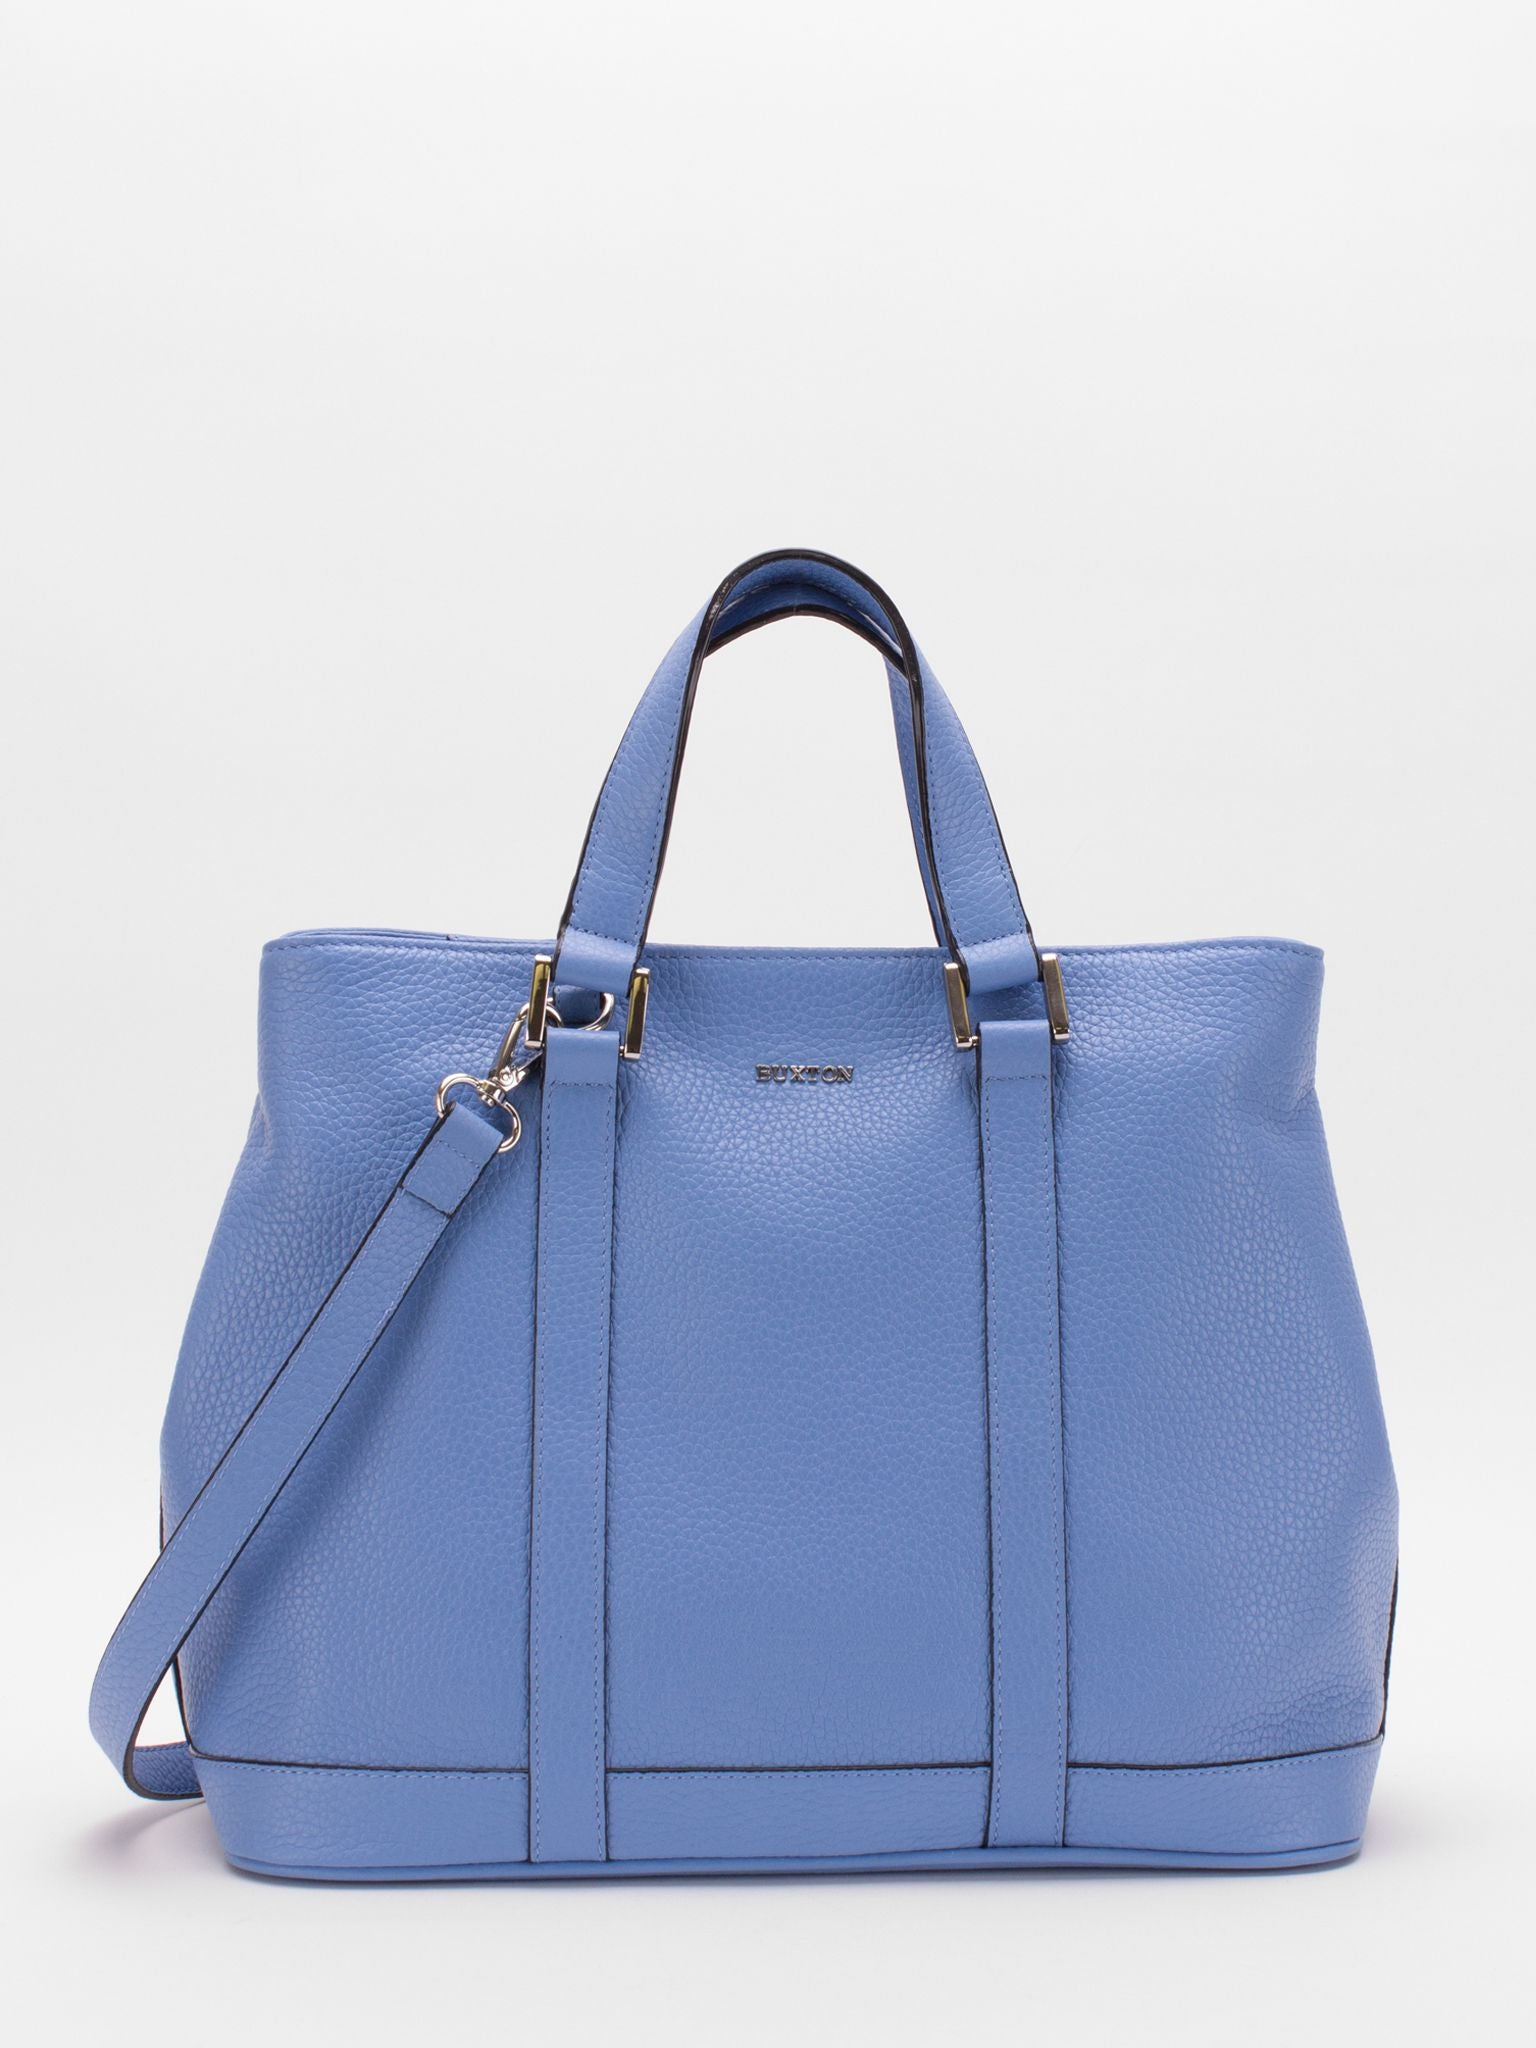 Adelaide Leather Satchel - Sky Blue